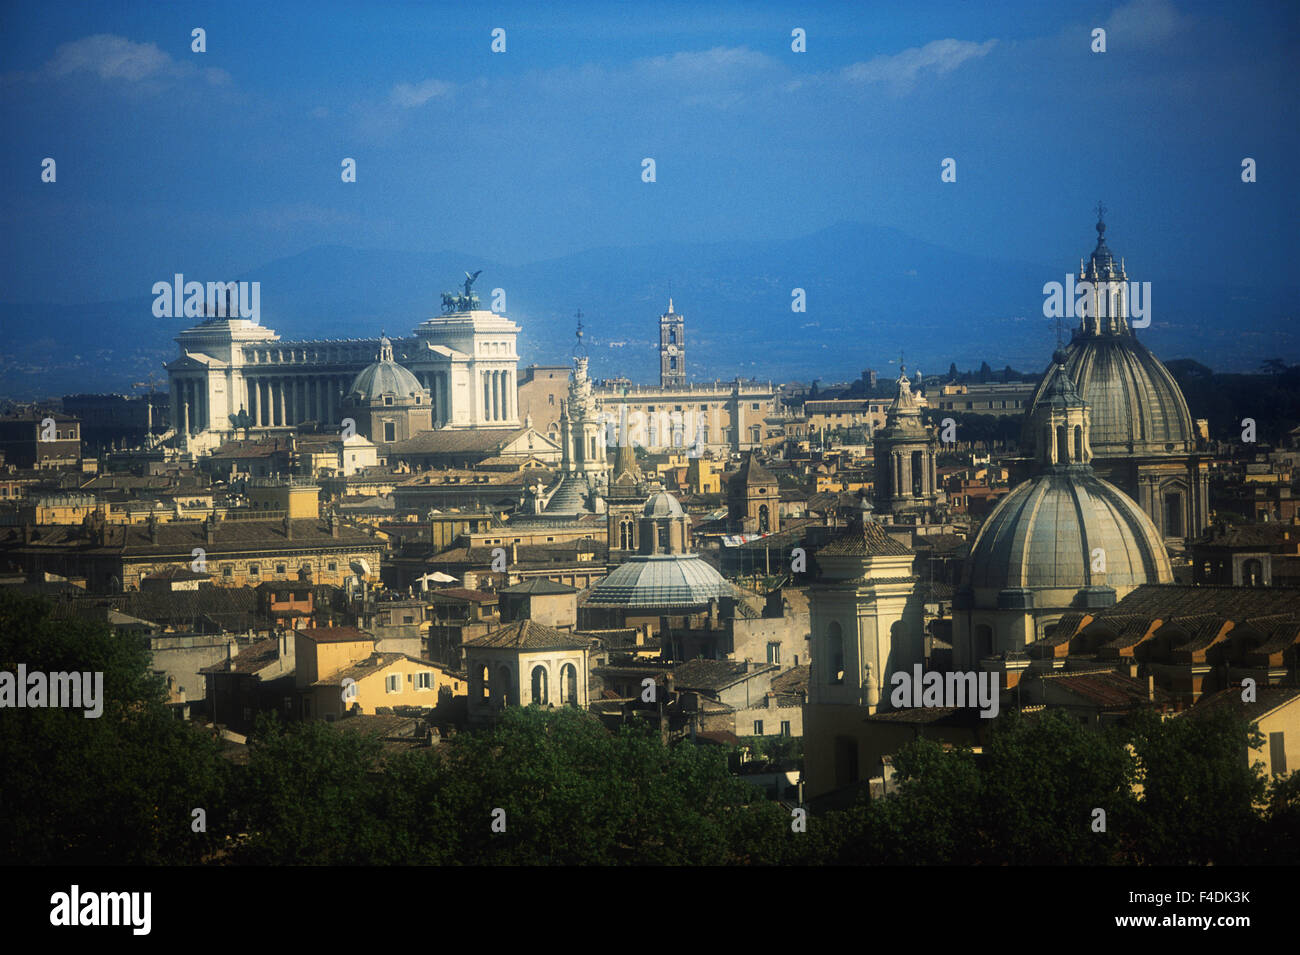 Italy, Rome, Vatican City, Vittorio Emanuele II (Altare della Patria). city and Monument. (Large format sizes available) - Stock Image